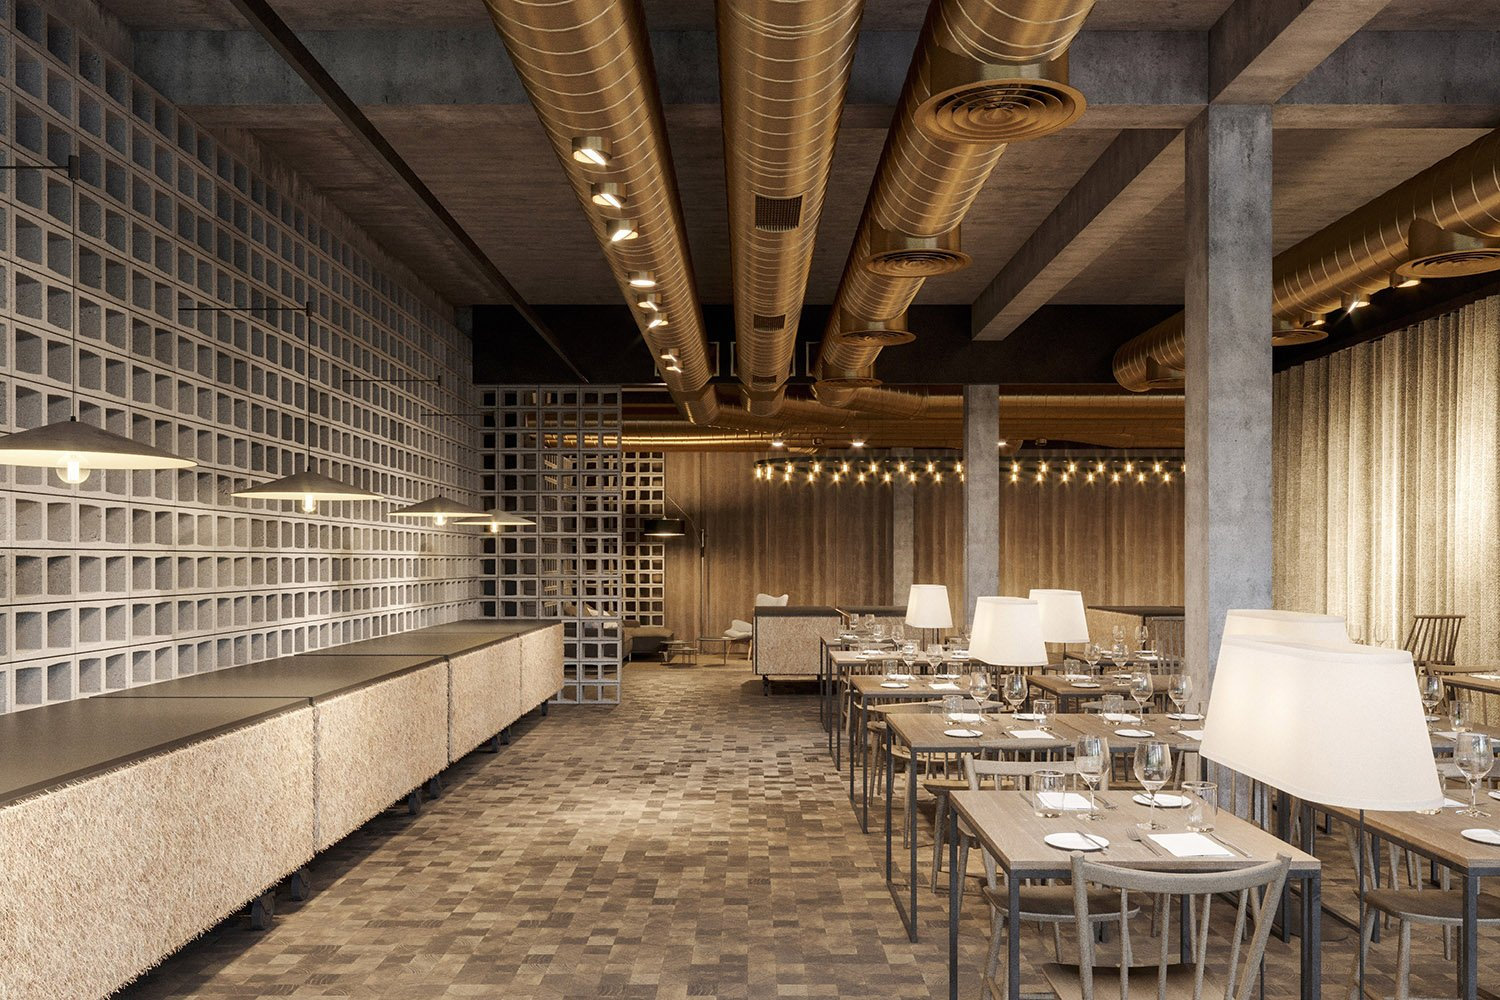 enota maestoso hotel & spa 15 Studio Spacer (visualisations)}